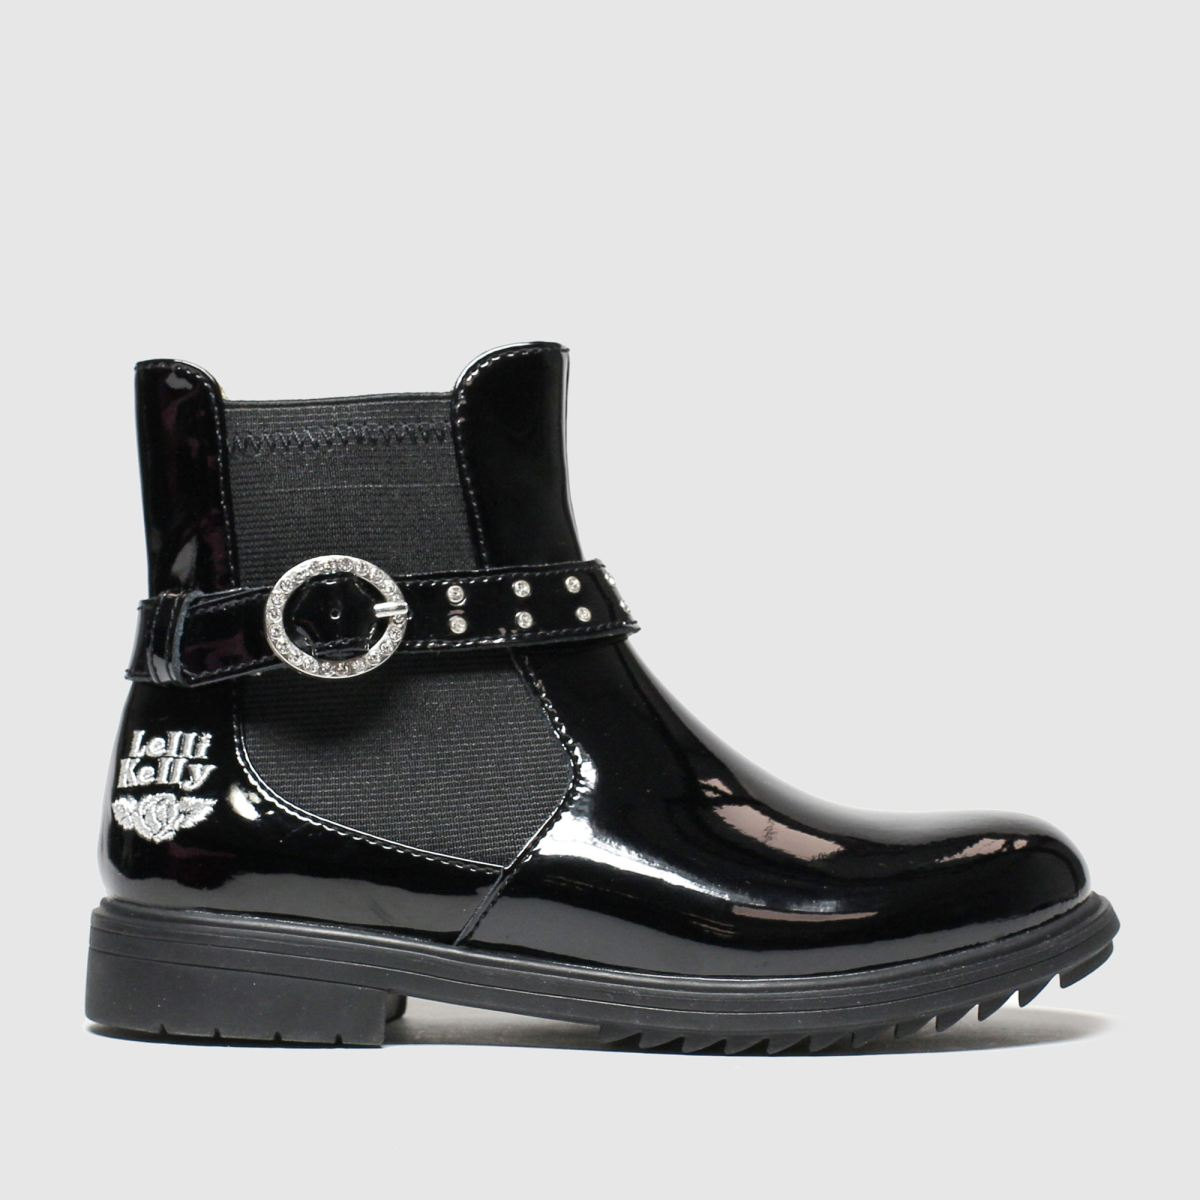 Lelli Kelly Lelli Kelly Black Anna Boots Junior